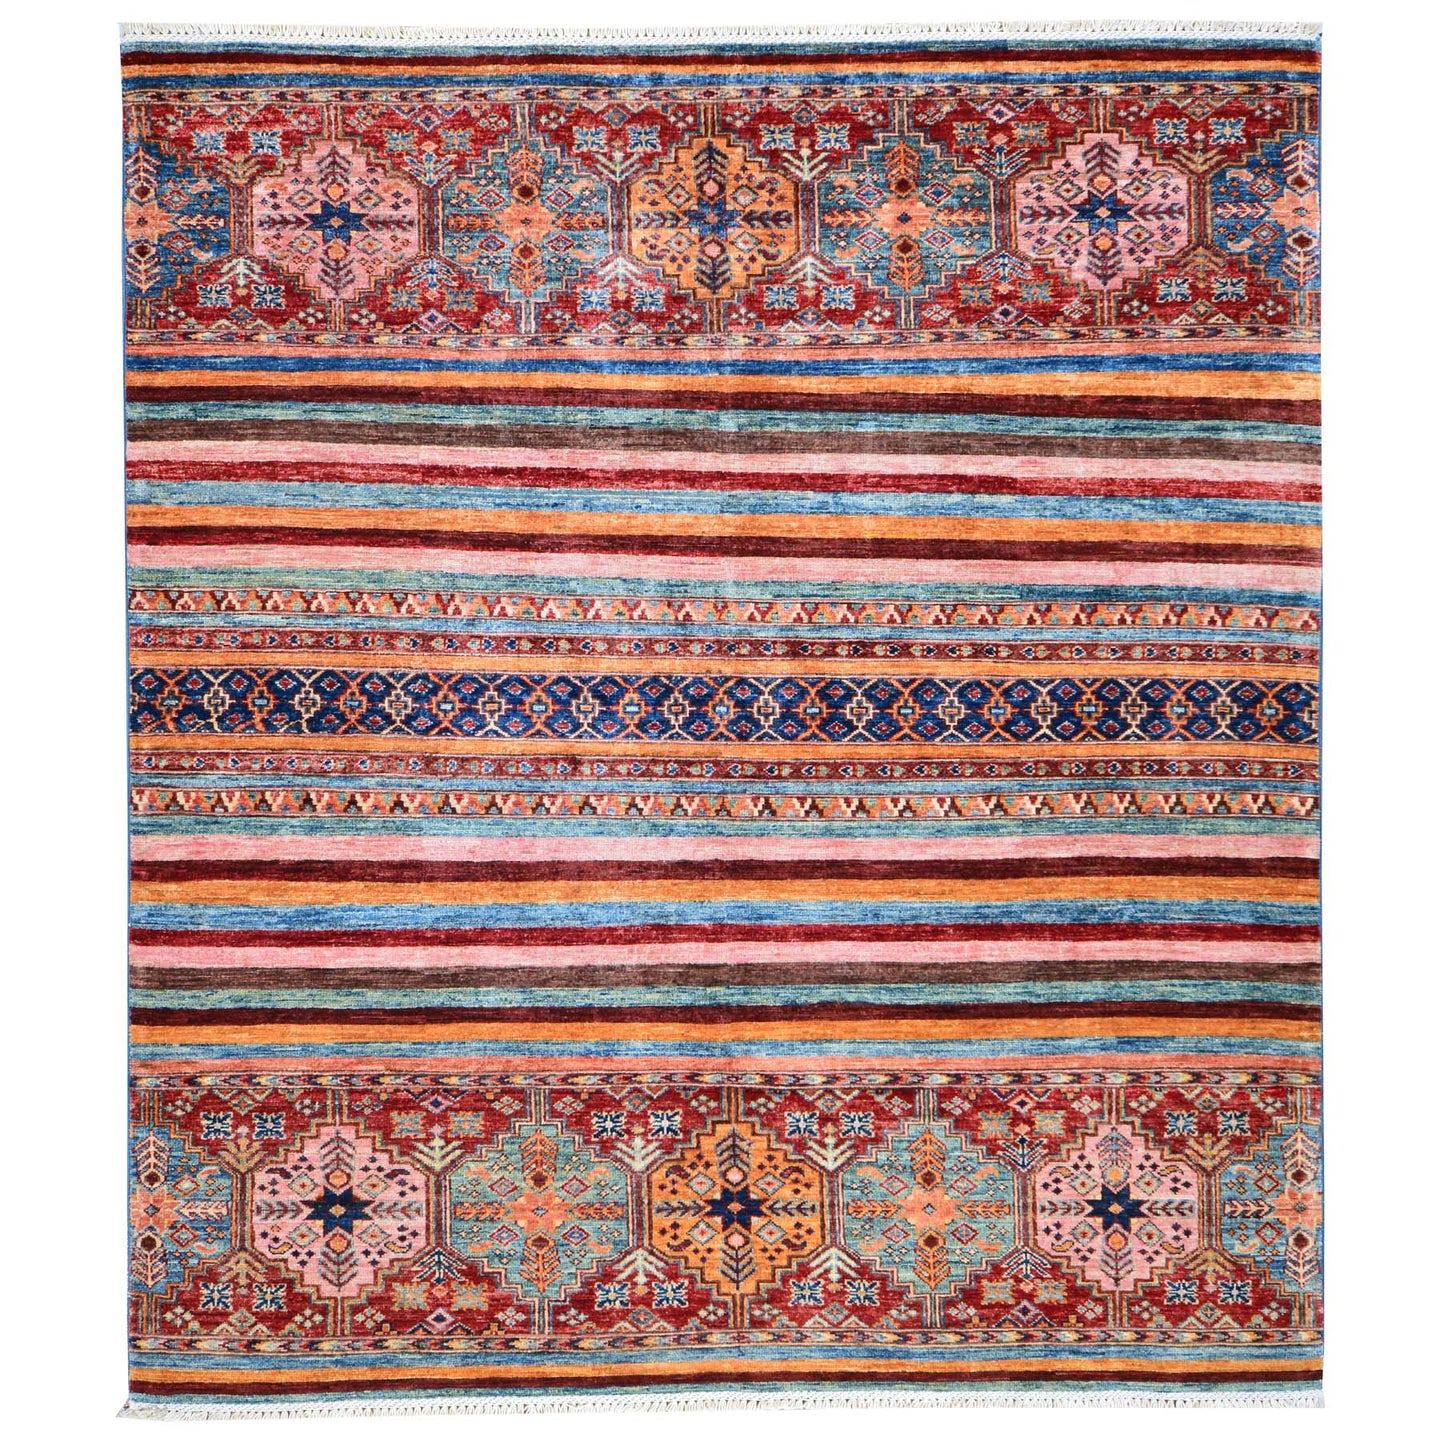 Oriental rugs, hand-knotted carpets, sustainable rugs, classic world oriental rugs, handmade, United States, interior design,  Brrsf-6147